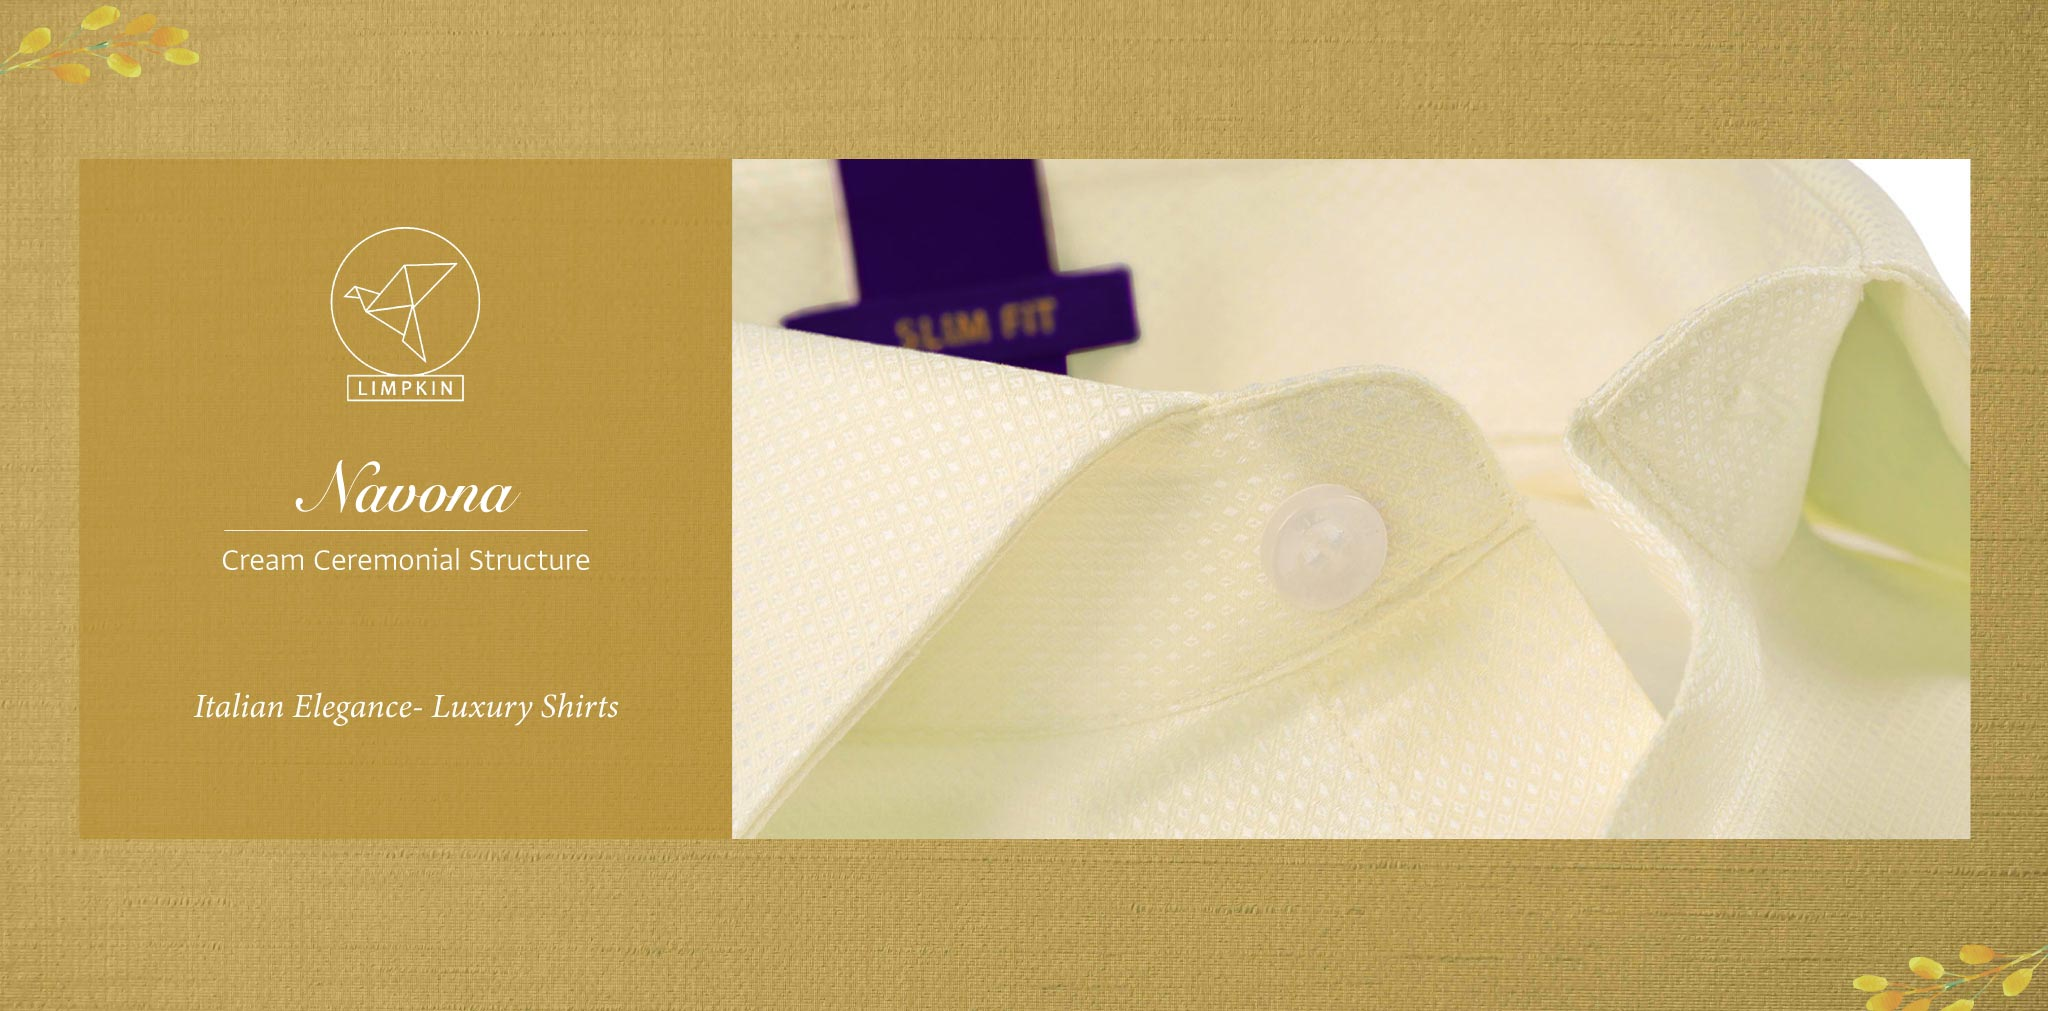 Navona- Cream Ceremonial Structure- 2 Ply Pure Egyptian Giza Cotton- Delivery from 20th Oct - Banner